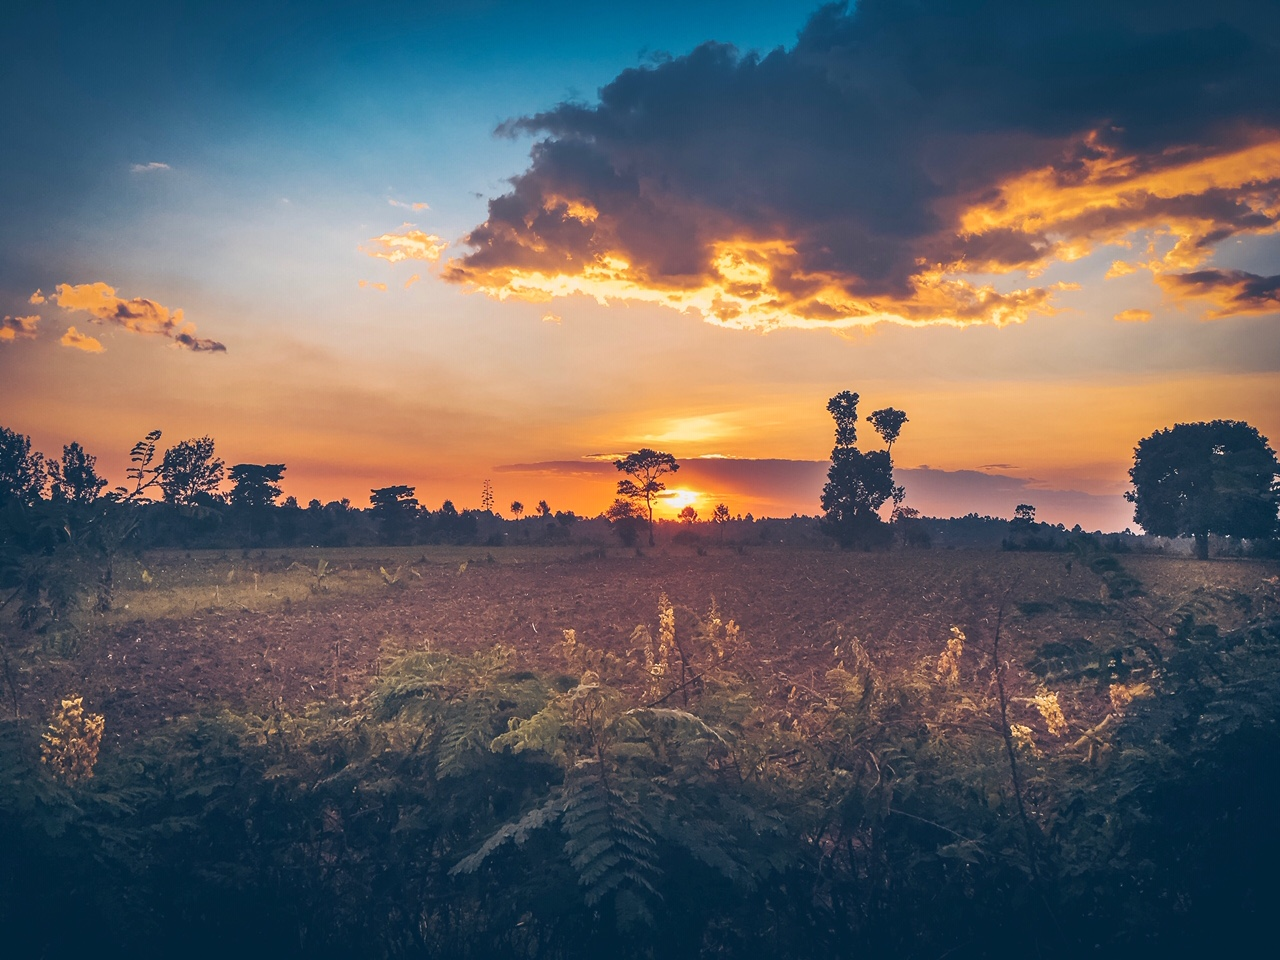 Kenya is more lush than I ever imagined. God's handiwork on display!  Photo by Cullen McDaniel.